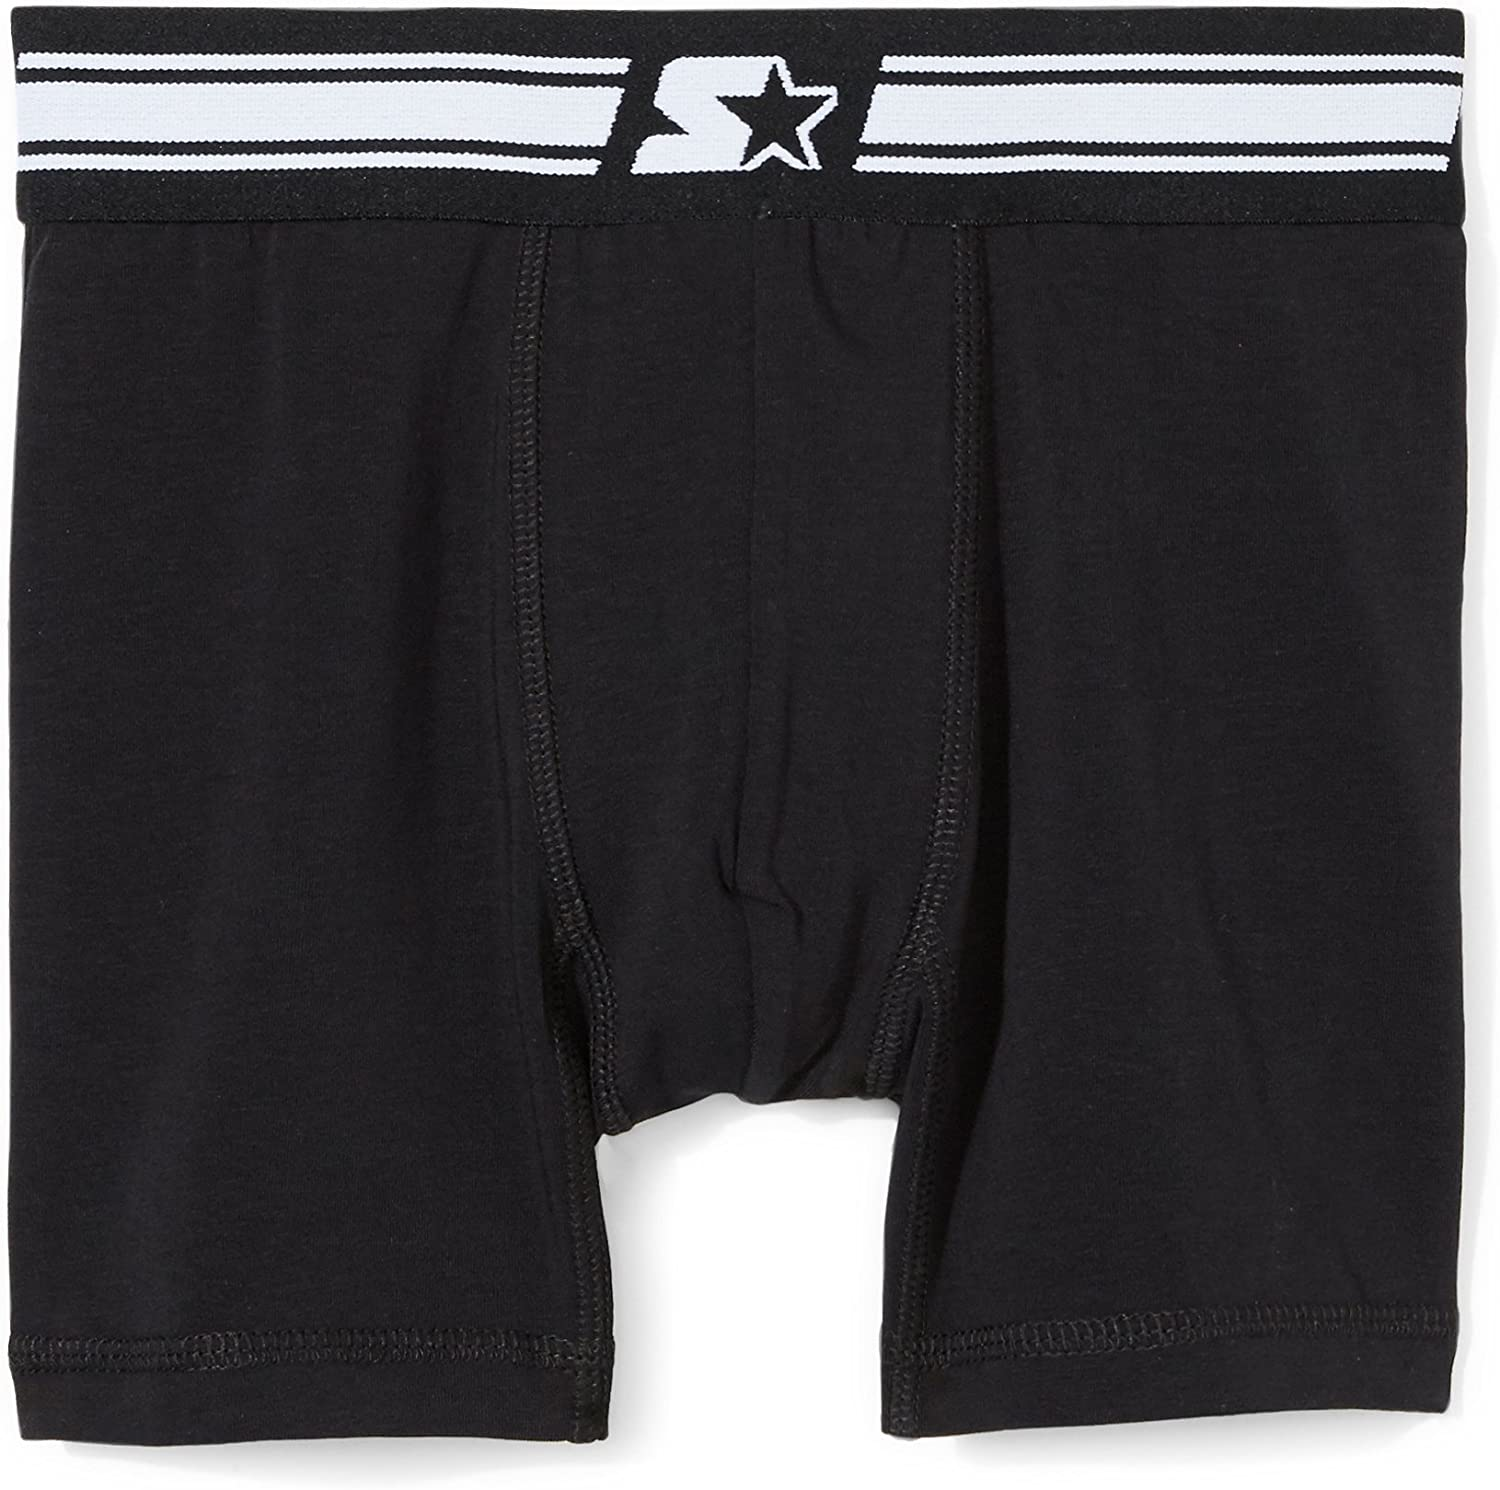 Starter Boys 4-Pack Stretch Performance Cotton Boxer Brief Exclusive,